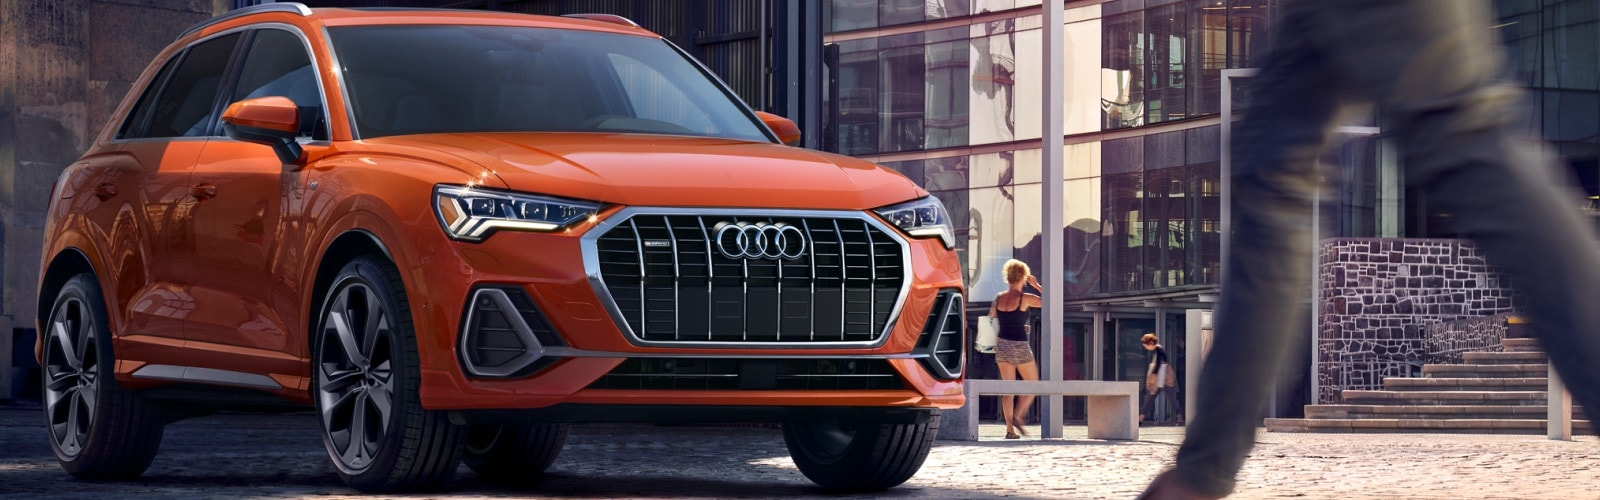 Audi Q3 Lease Deals NY Image